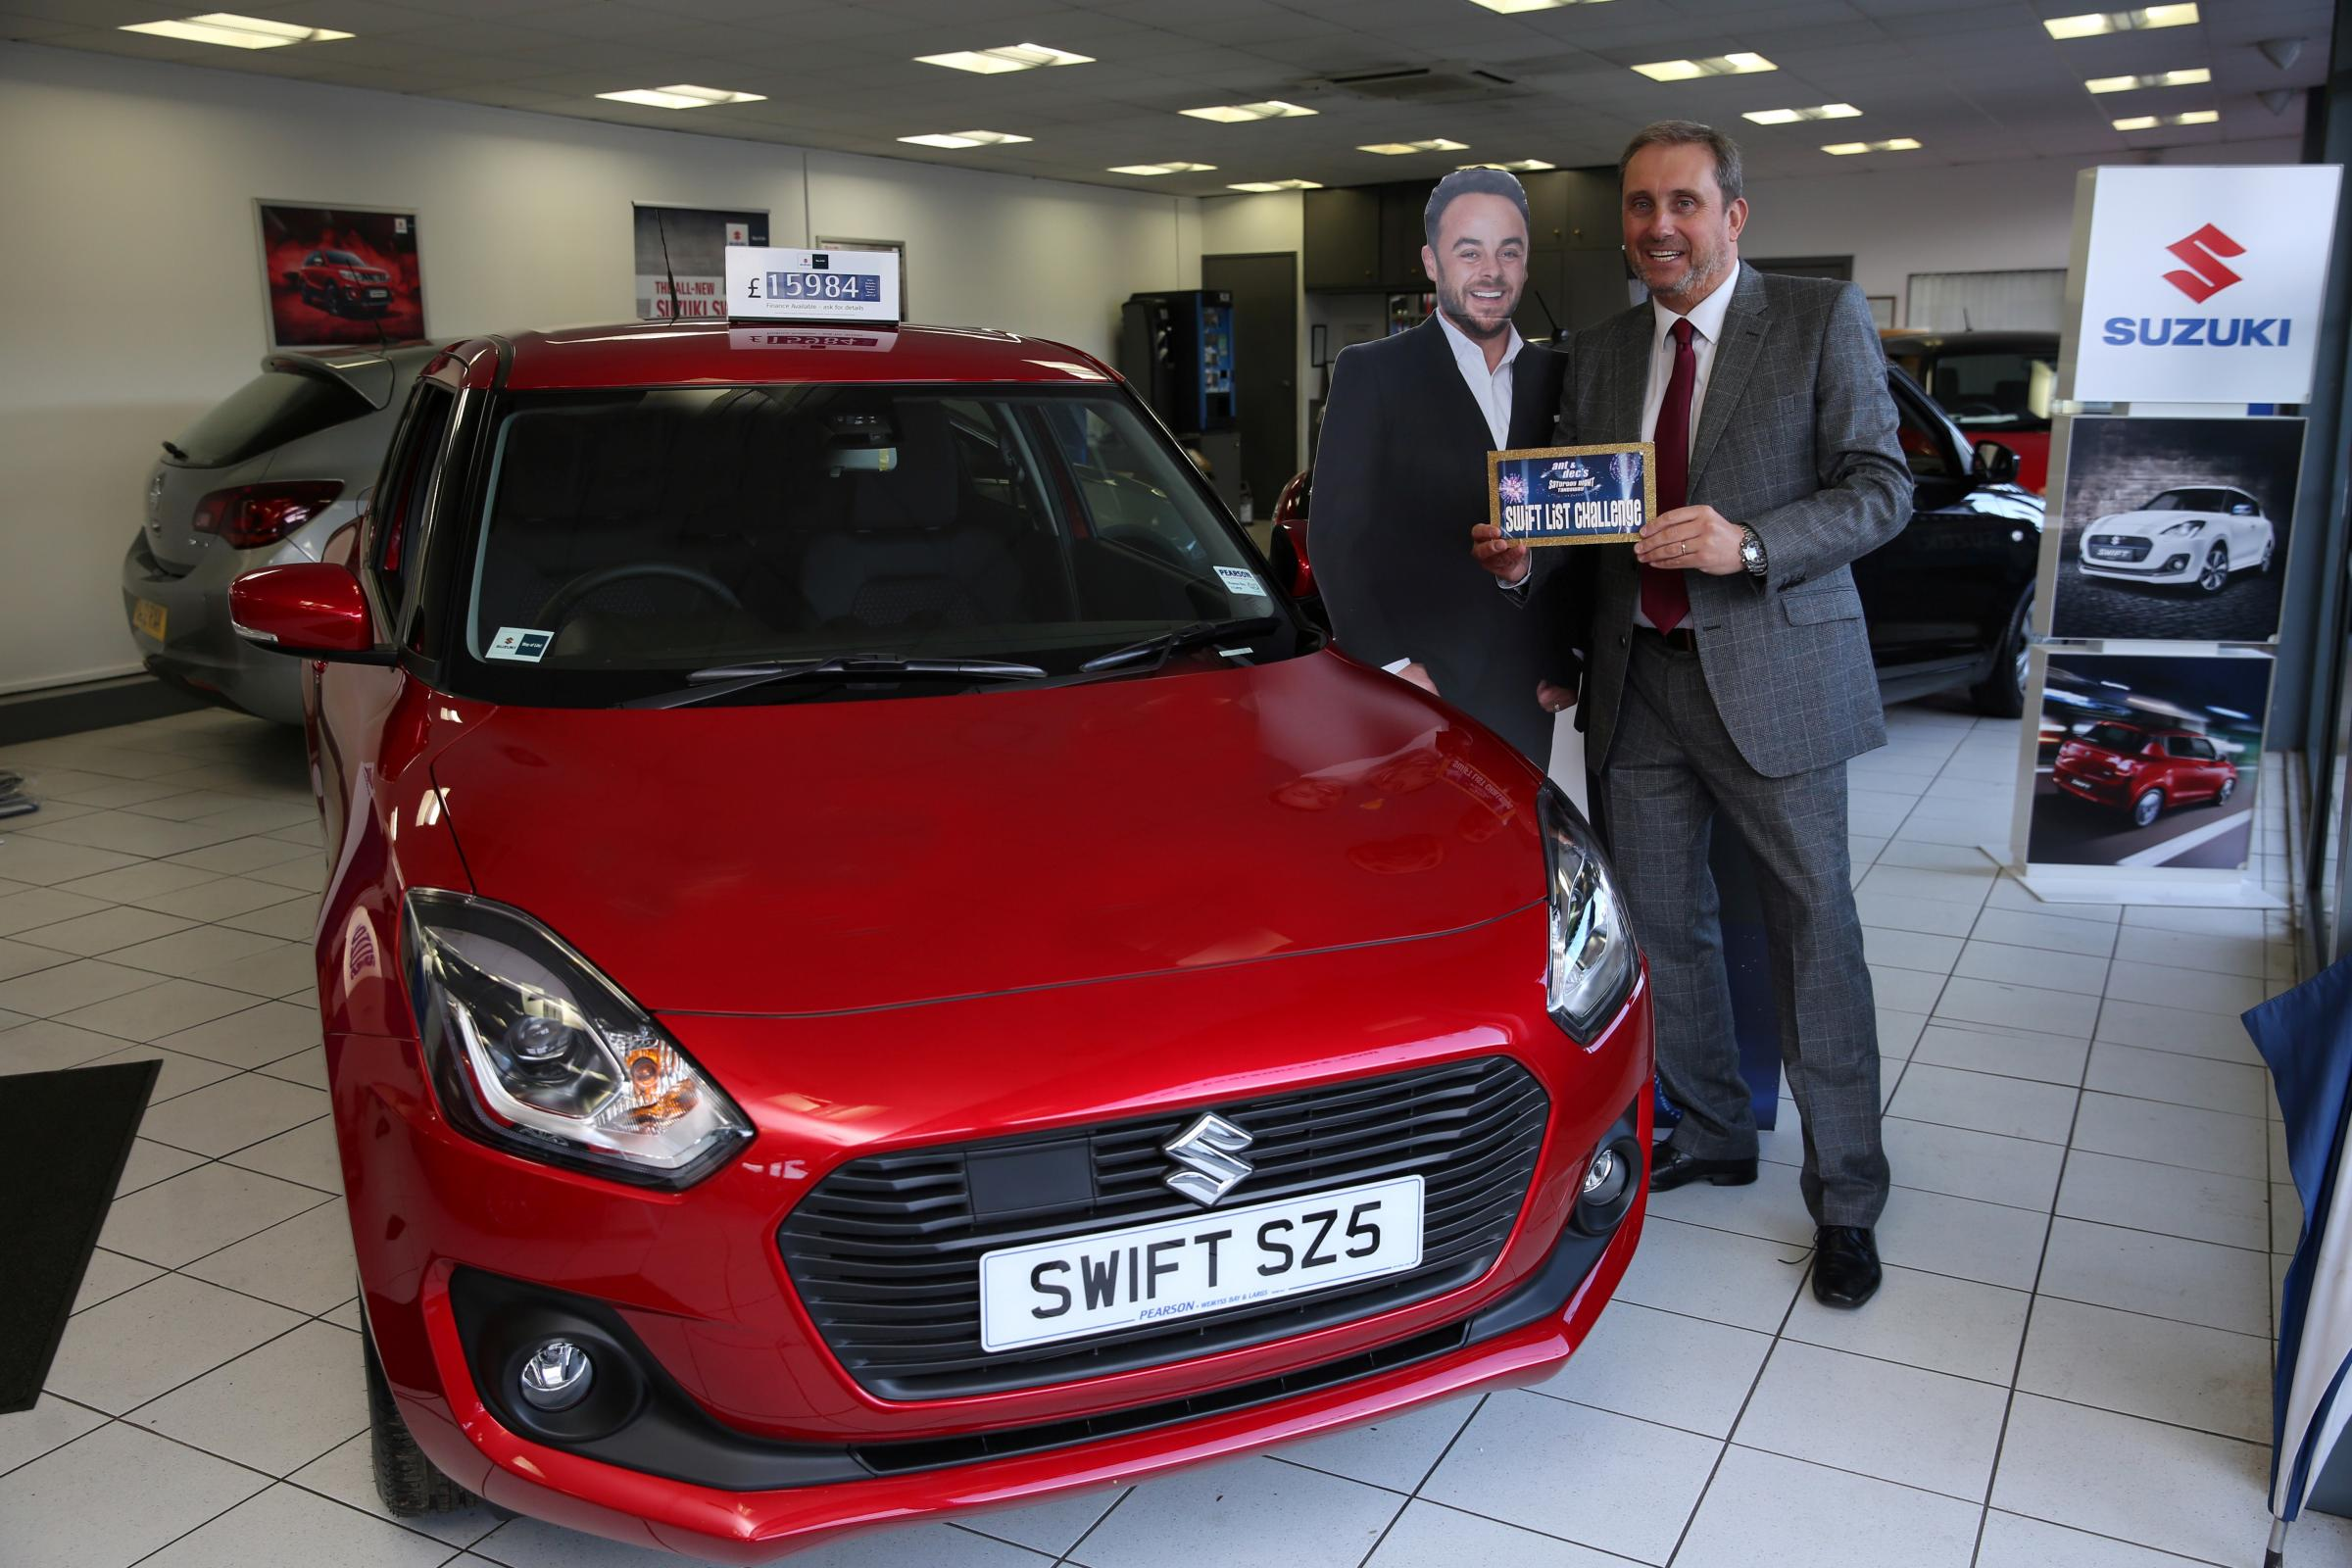 Wemyss Bay car salesman aims for the stars